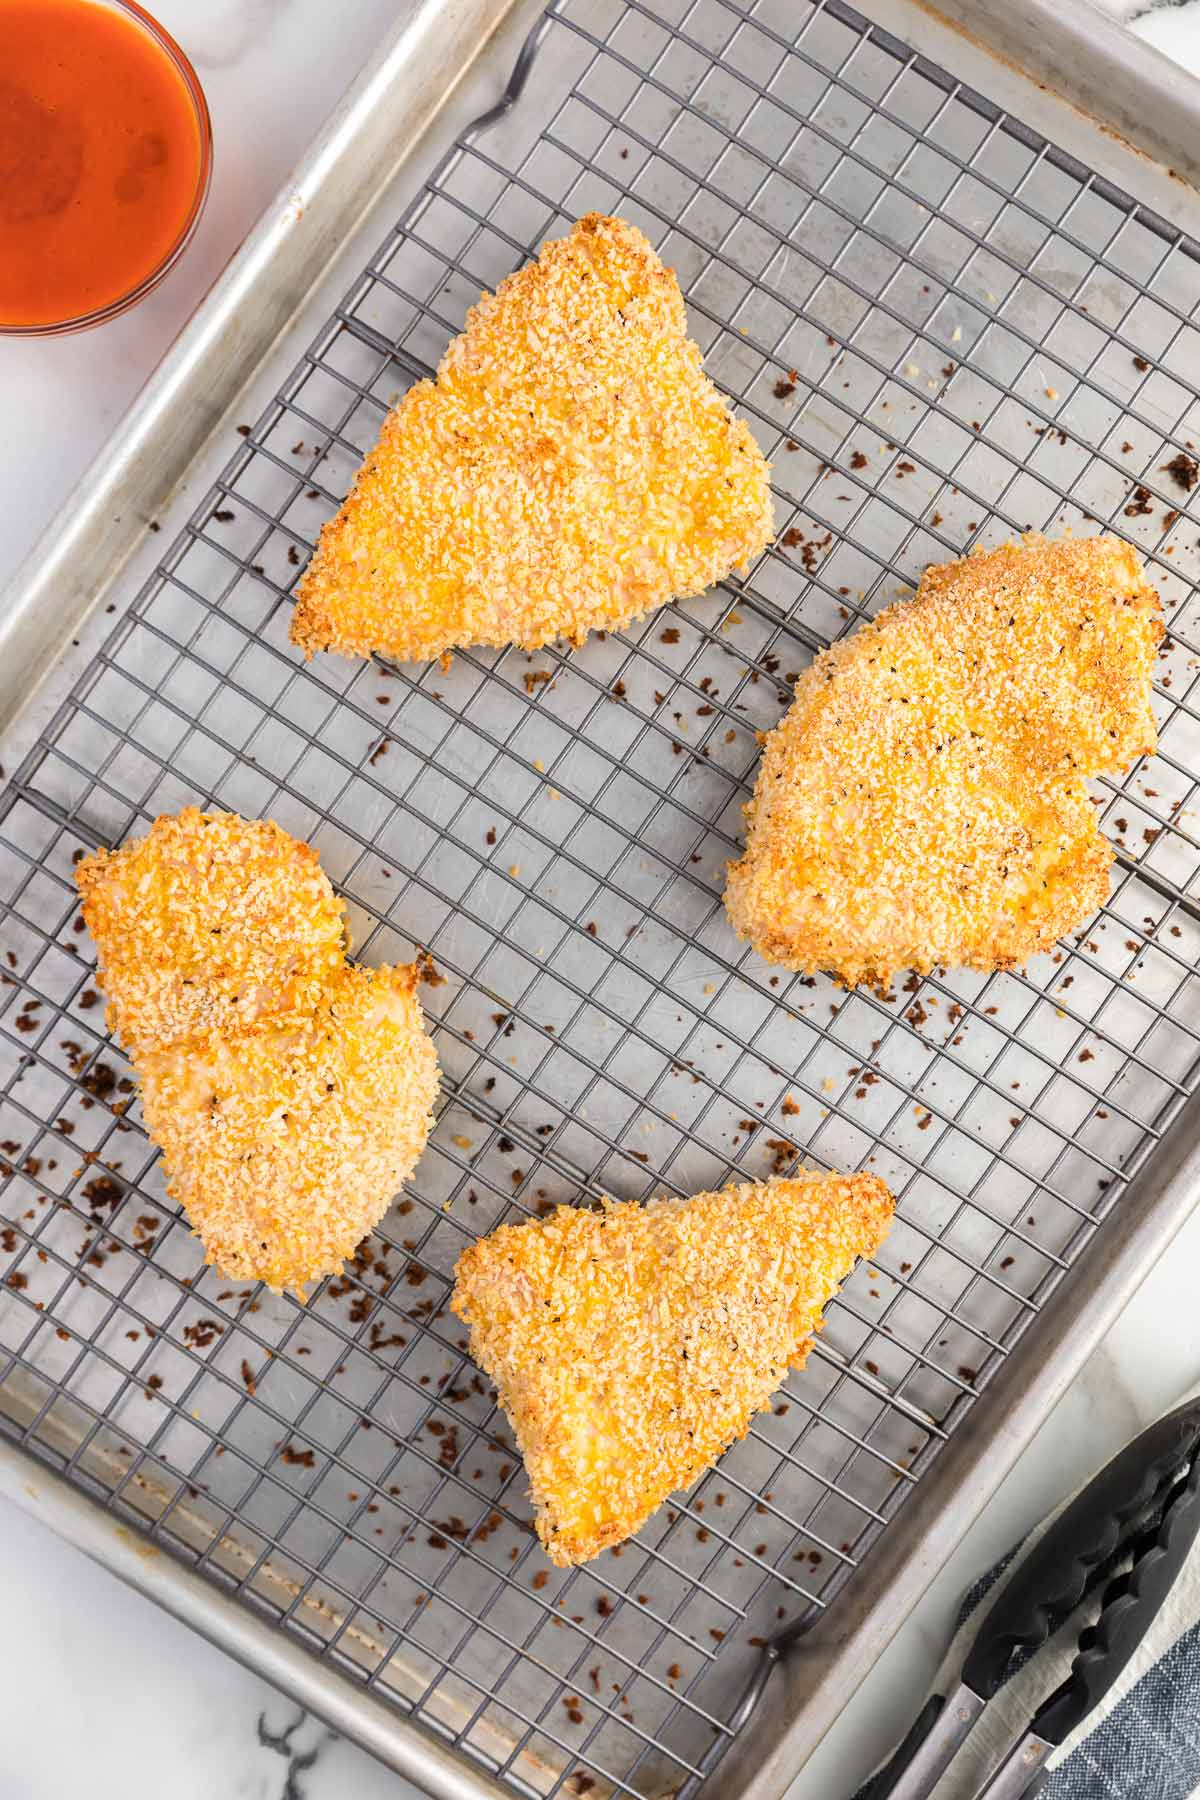 baked breaded chicken on a rack.